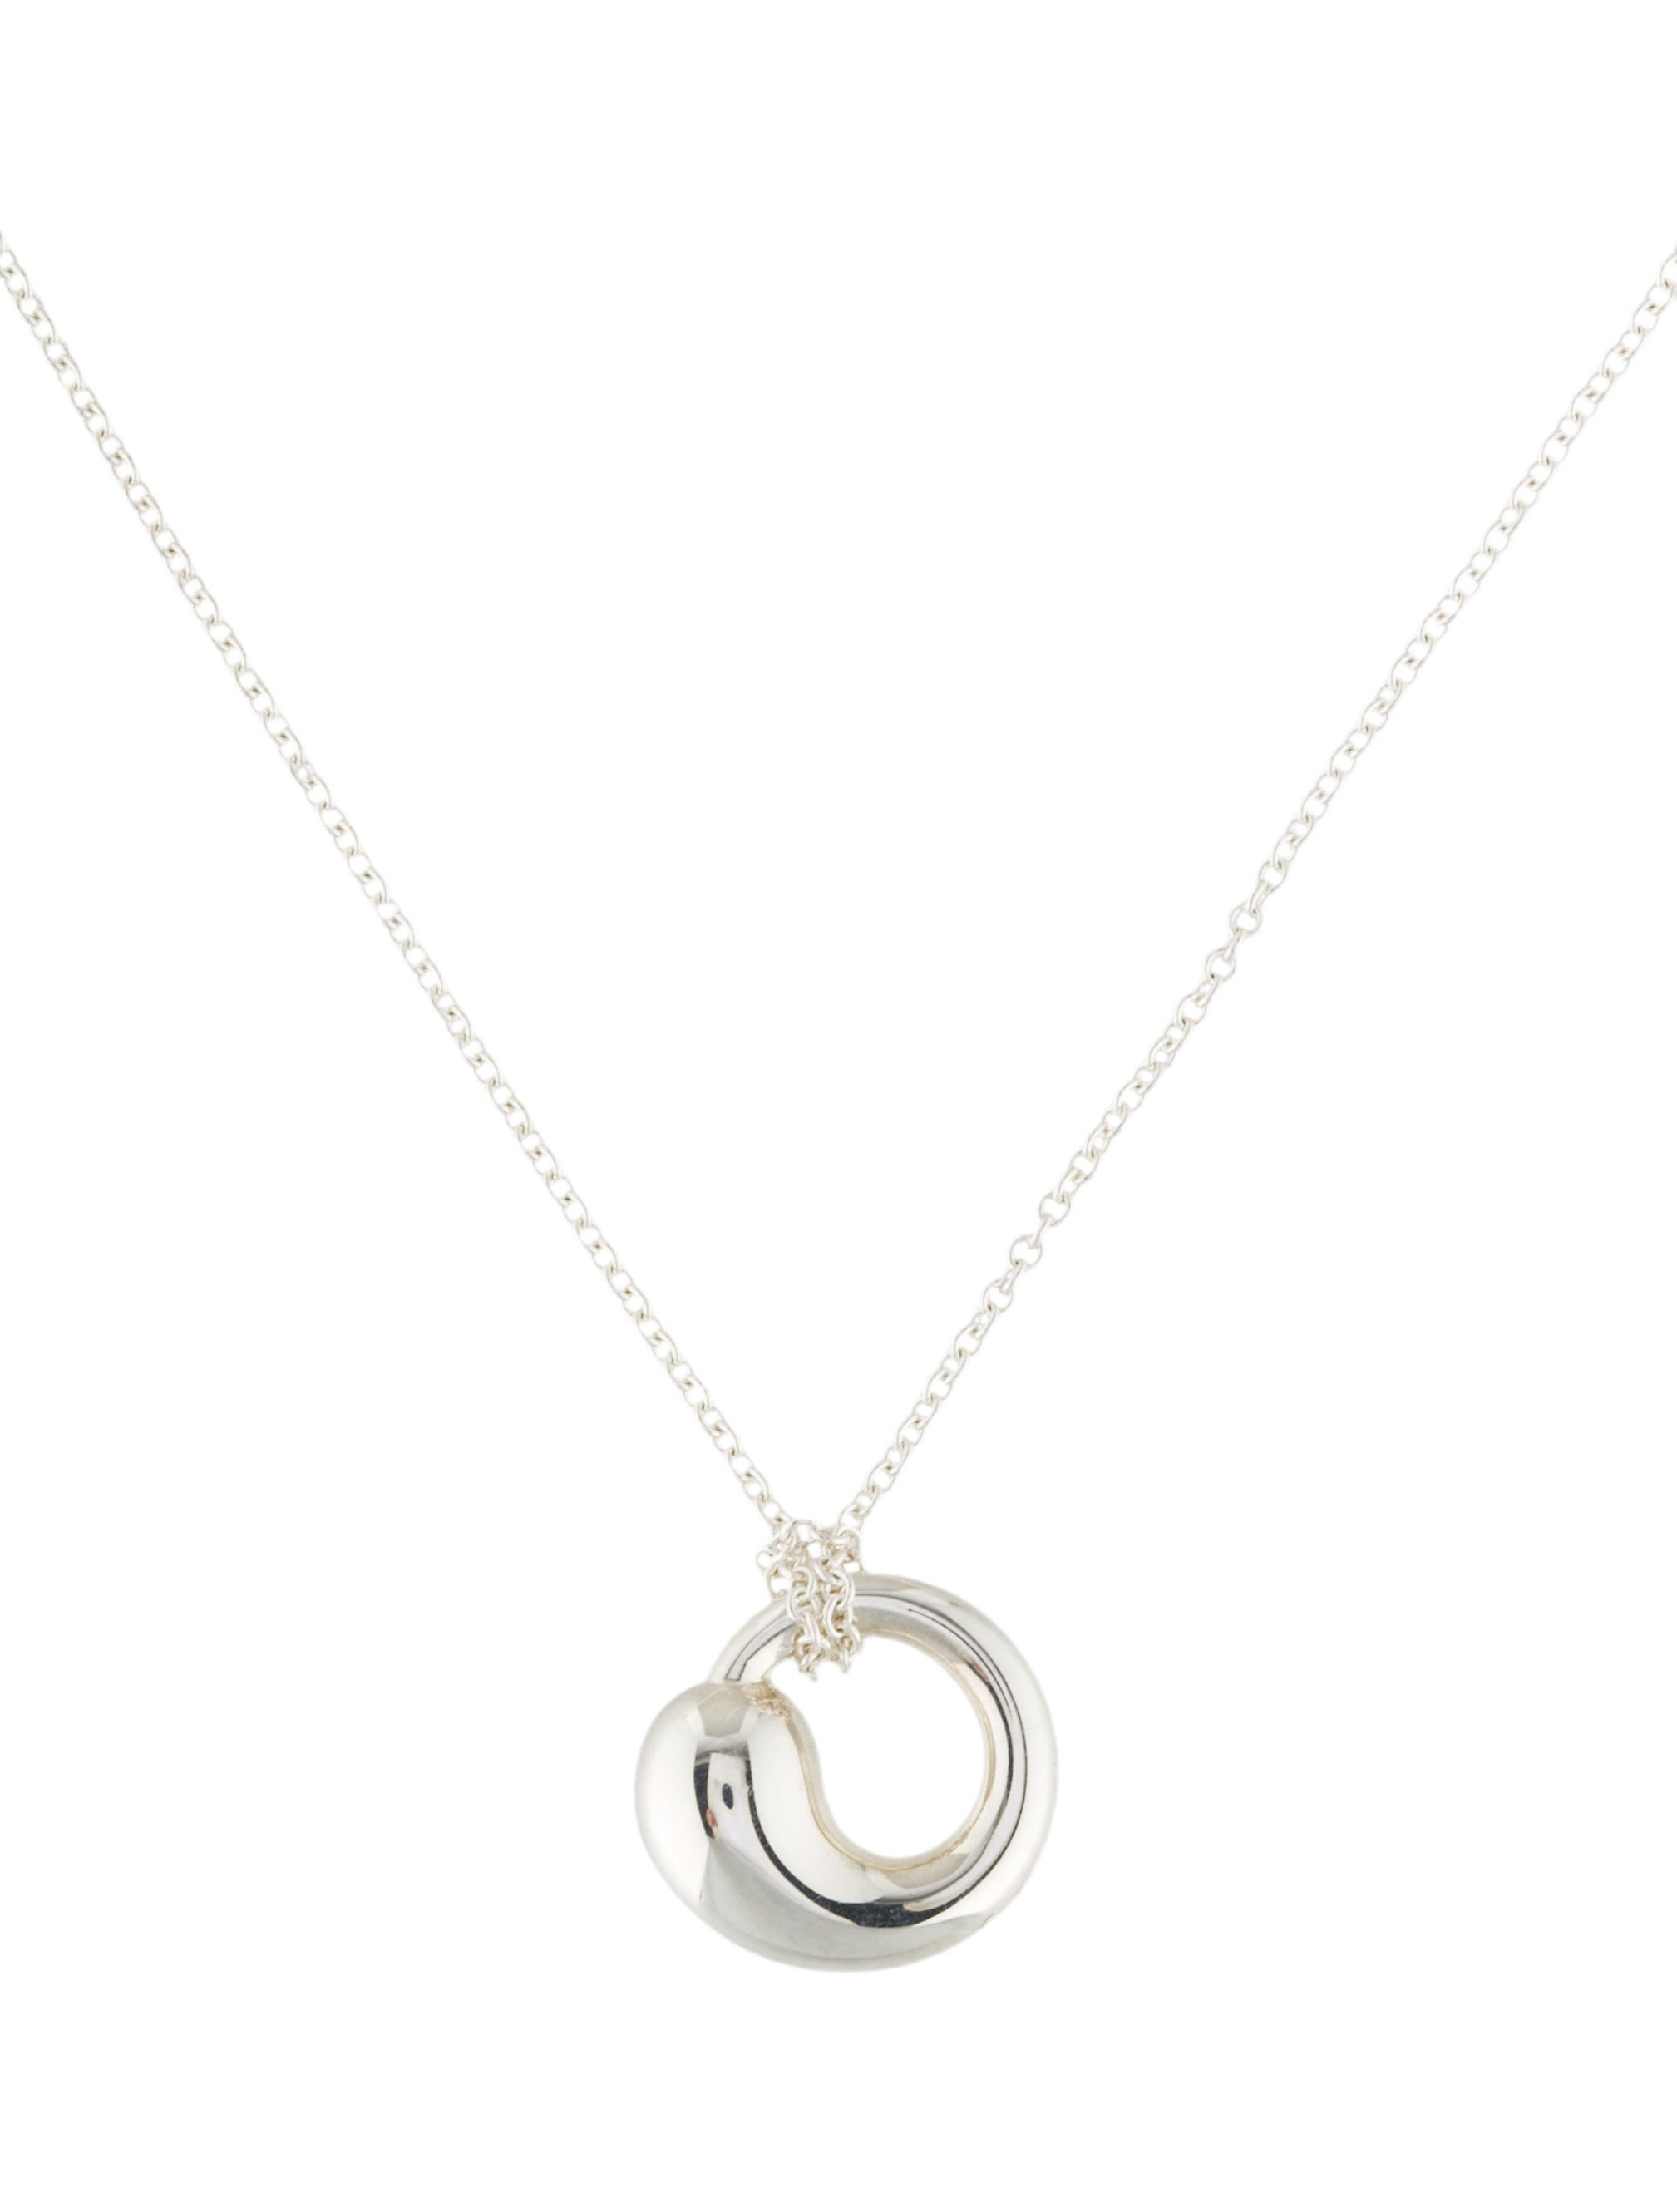 Tiffany co eternal circle pendant necklace necklaces tif55073 eternal circle pendant necklace aloadofball Images